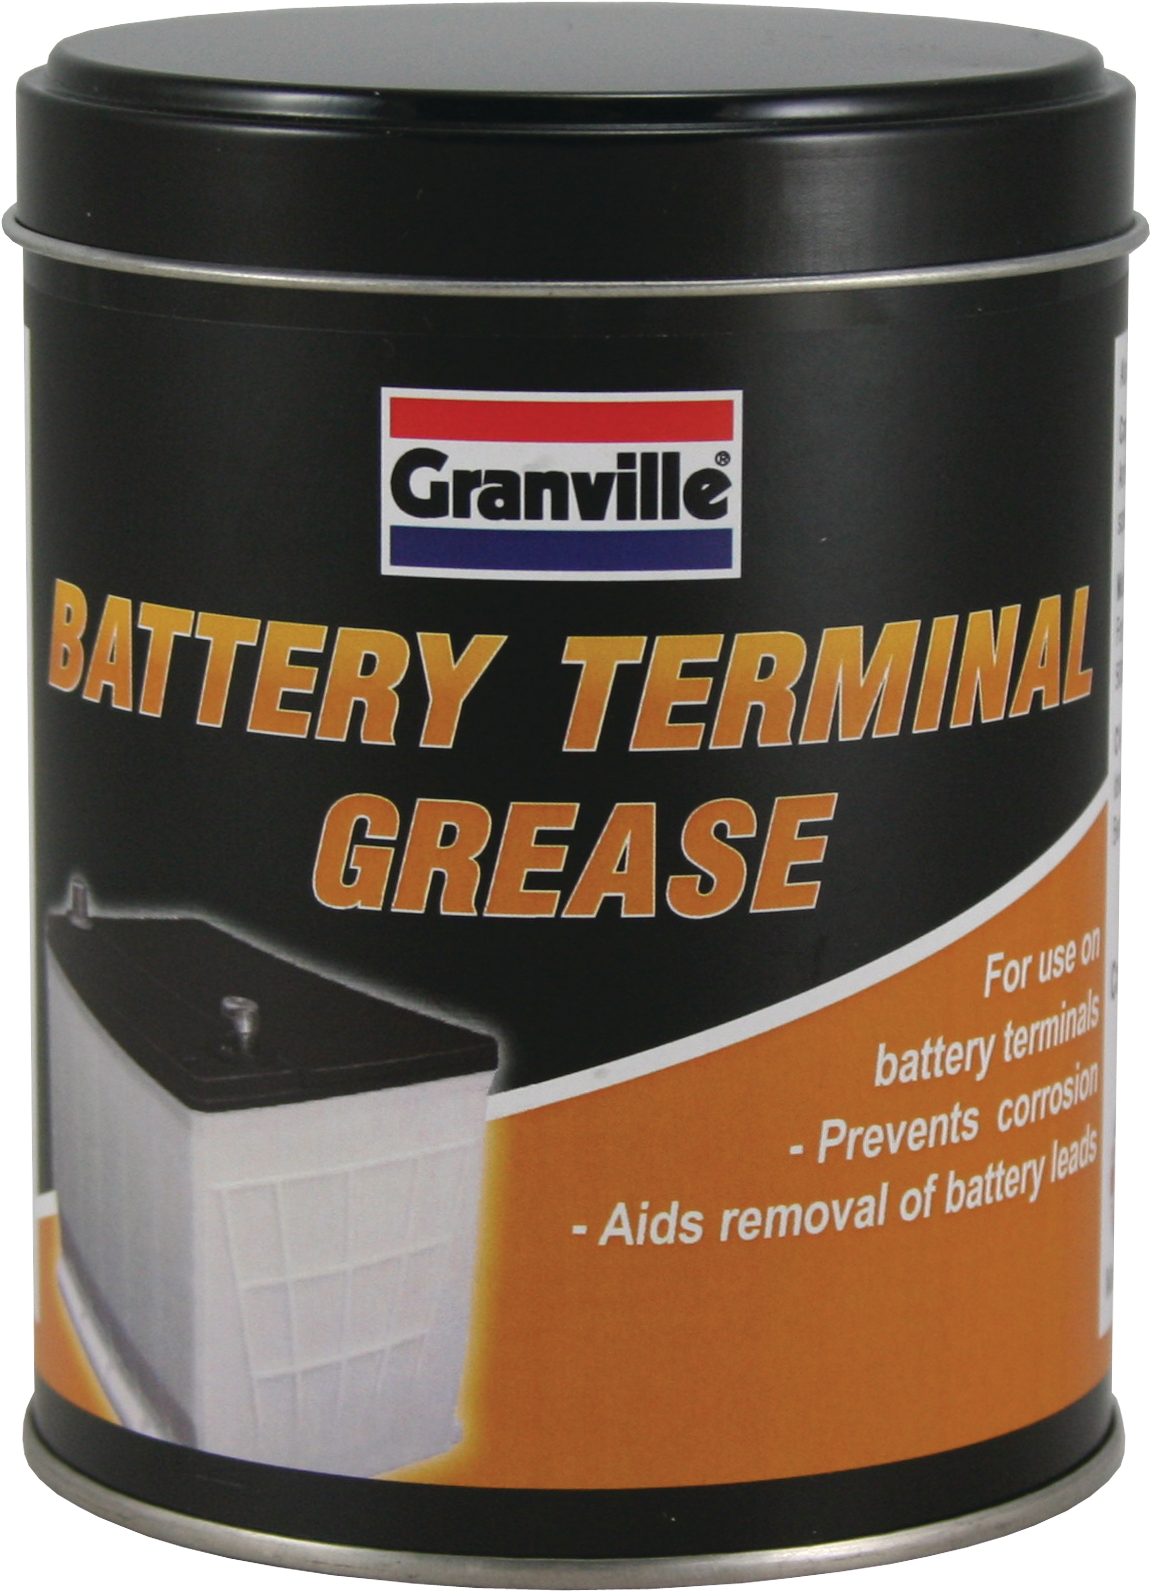 Granville Product Information